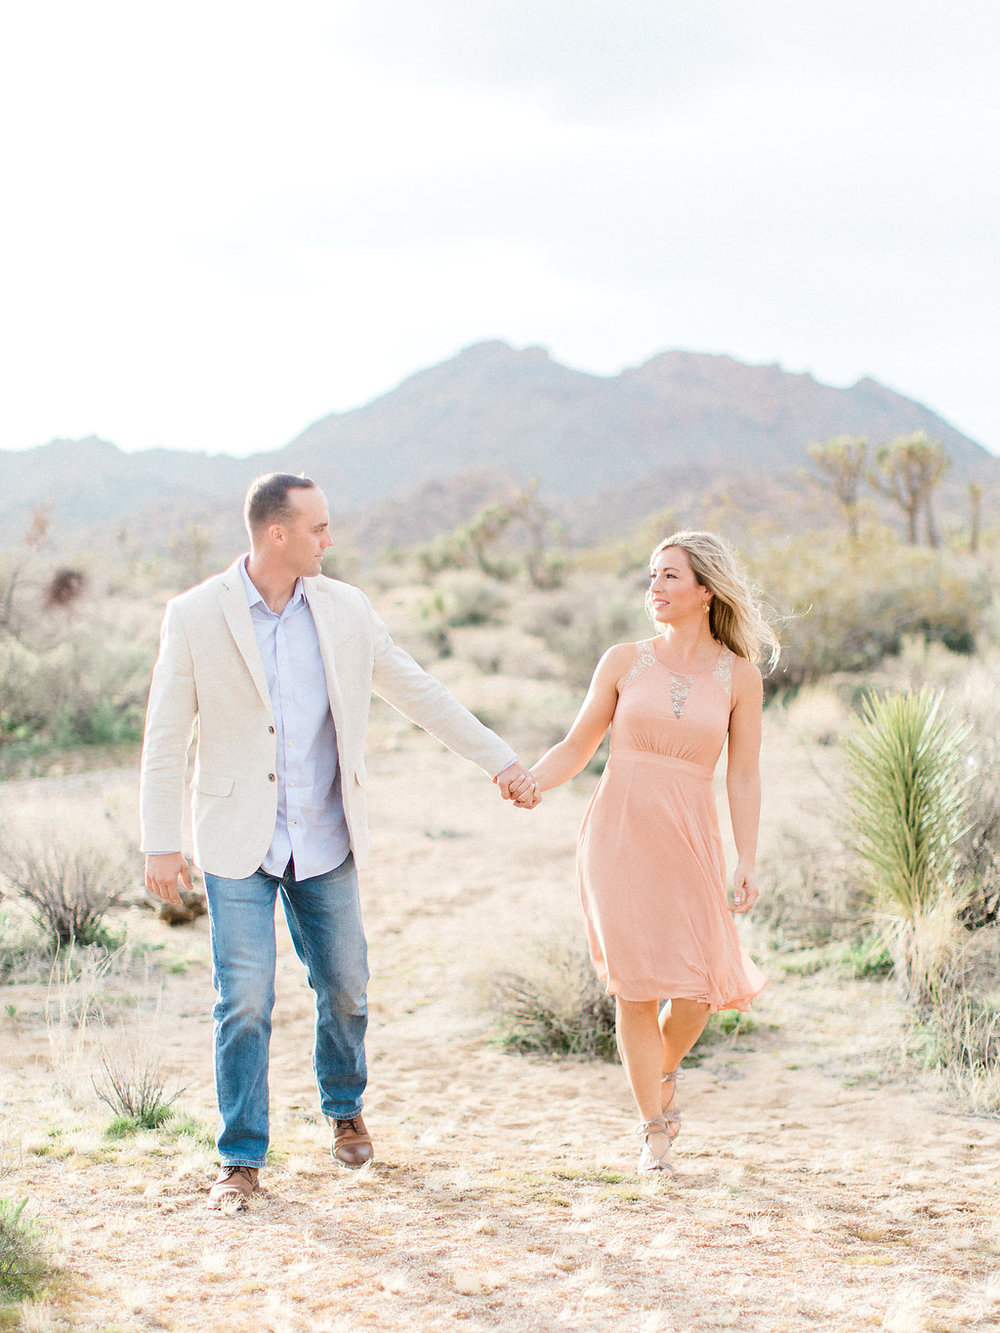 Joshua Tree Engagement Session | What to Wear for Pictures | Southern California Wedding Photographer | Mastin Labs Fuji Film | Fine Art Photographer | Desert Shoot | Walking in the desert.jpg